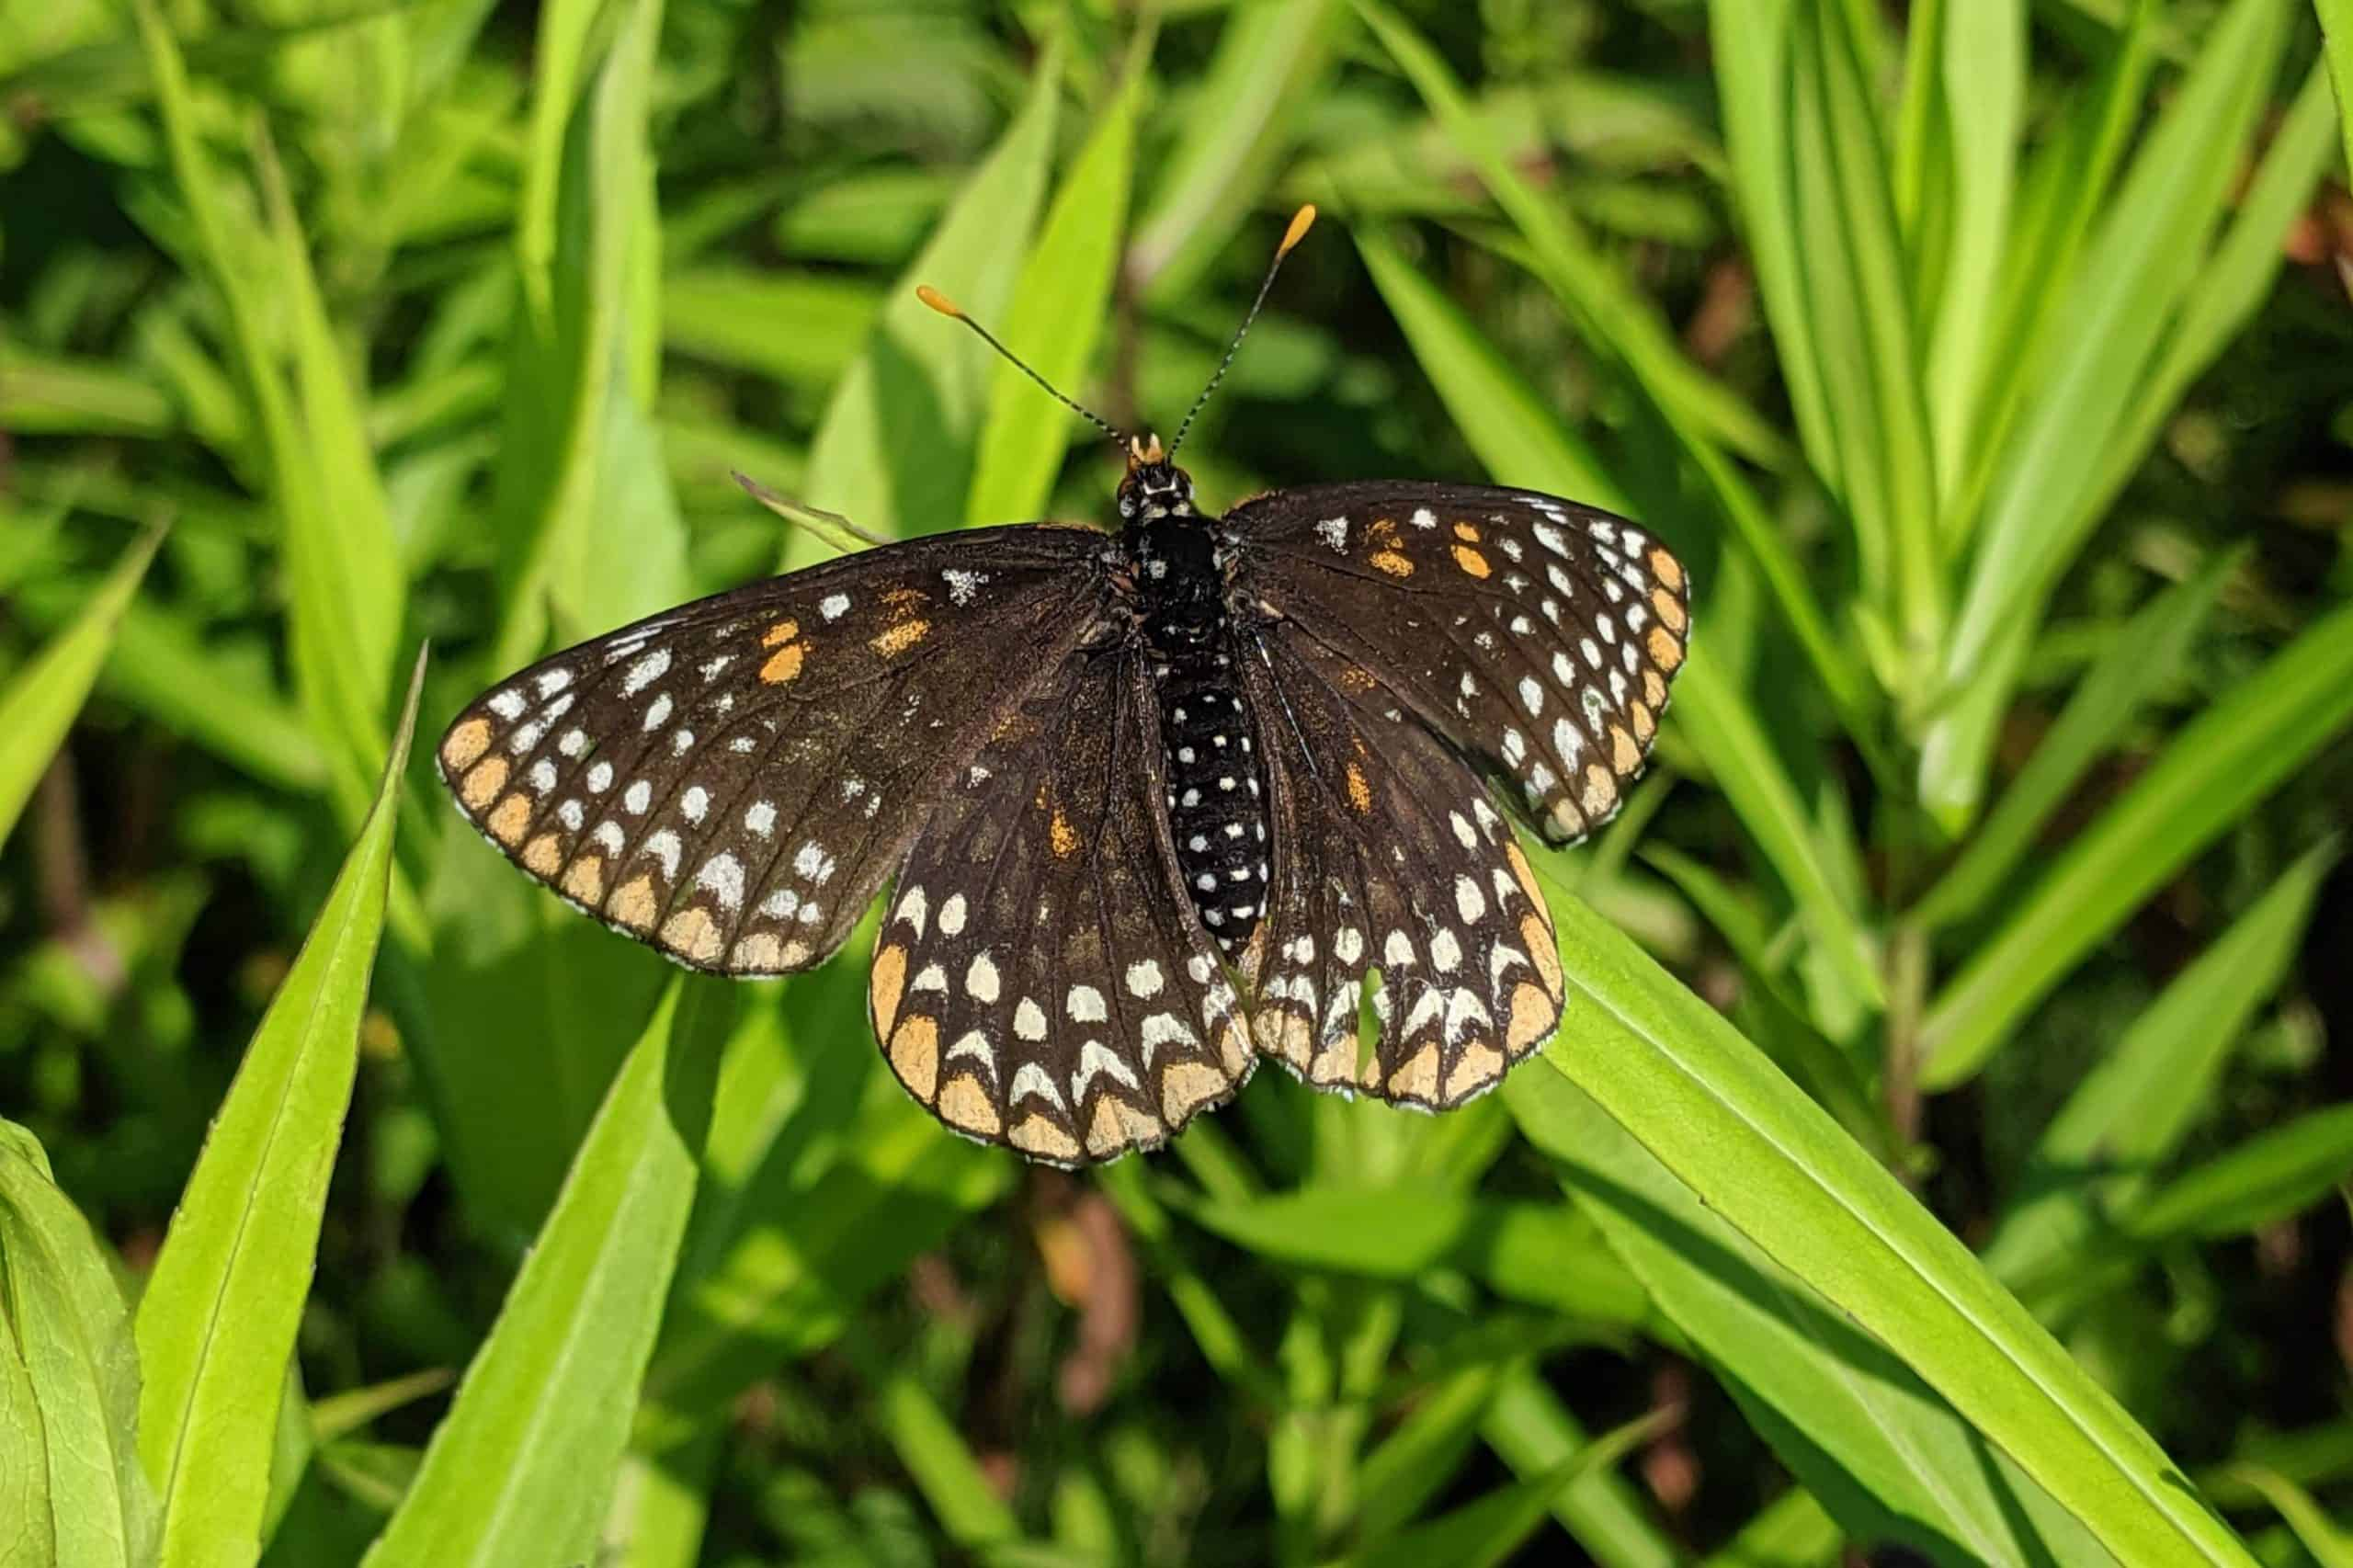 a butterfly resting on a blade of grass